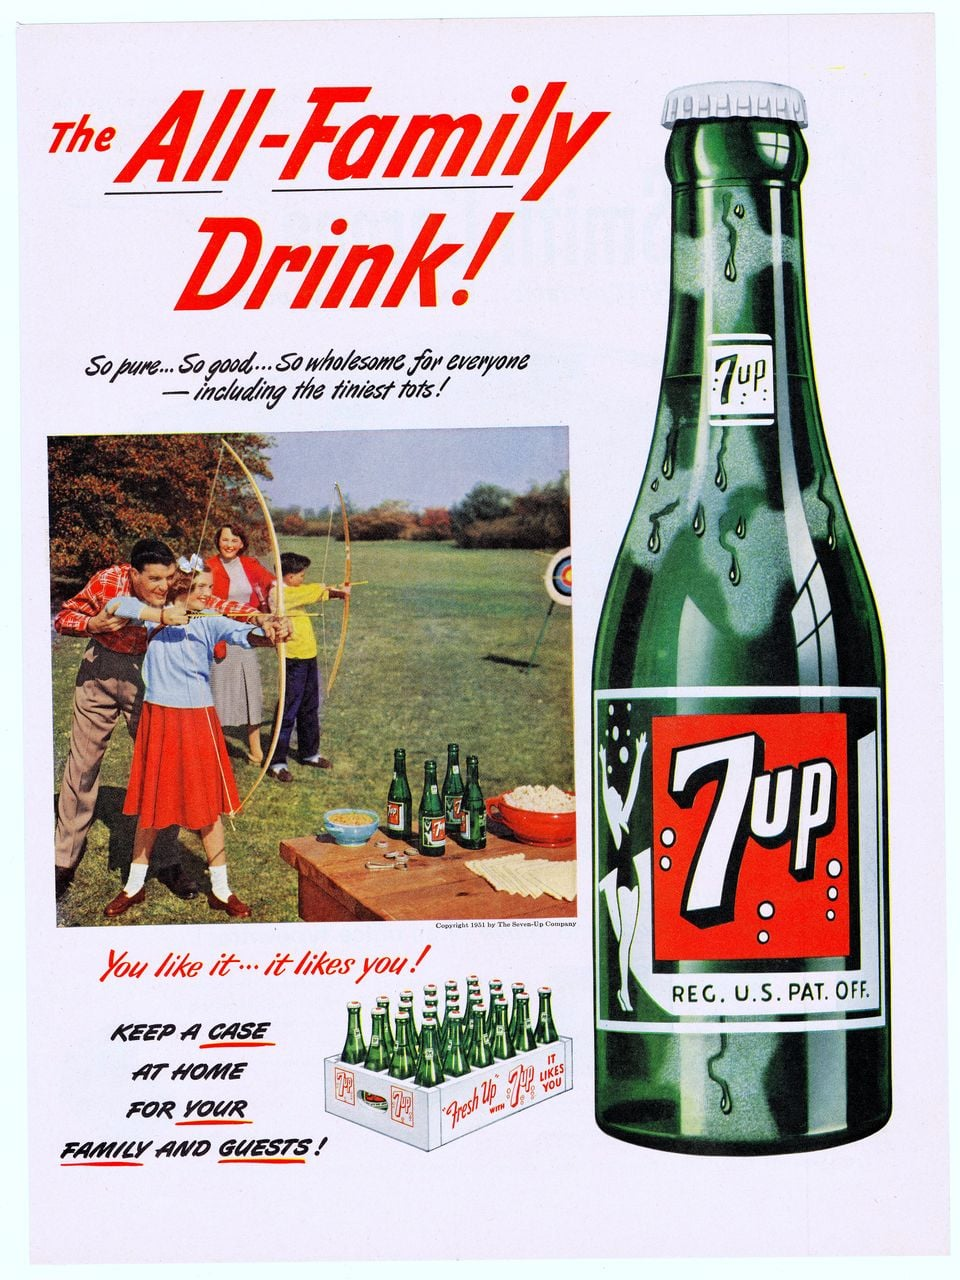 Drink 7UP.It refreshes the whole family during the hunger games.